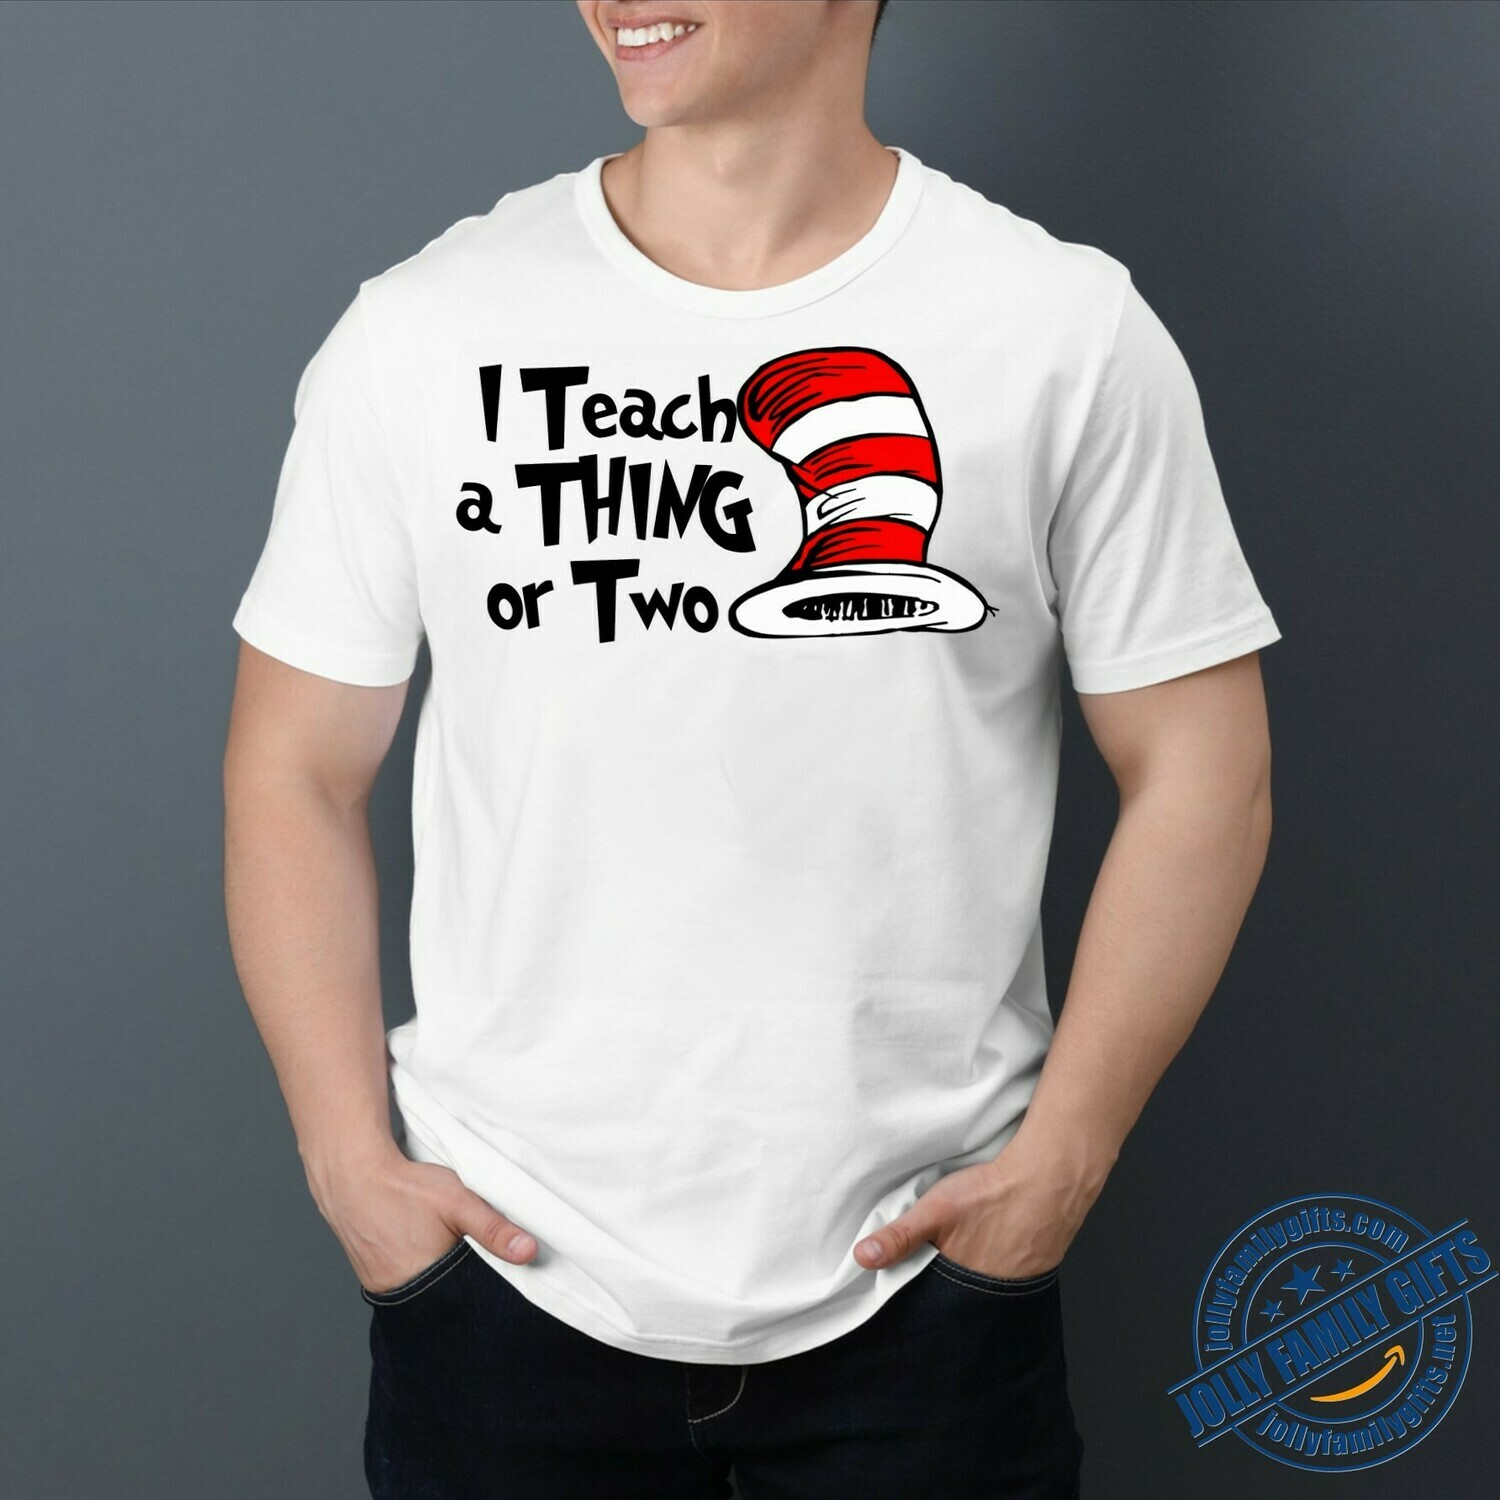 I Teach a Thing or Two Dr. Seuss Quotes Sayings With Best Images T-shirt for men Women Love Readers Teacher Dr Seuss Day Unisex T-Shirt Hoodie Sweatshirt Sweater Plus Size for Ladies Women Men Kids